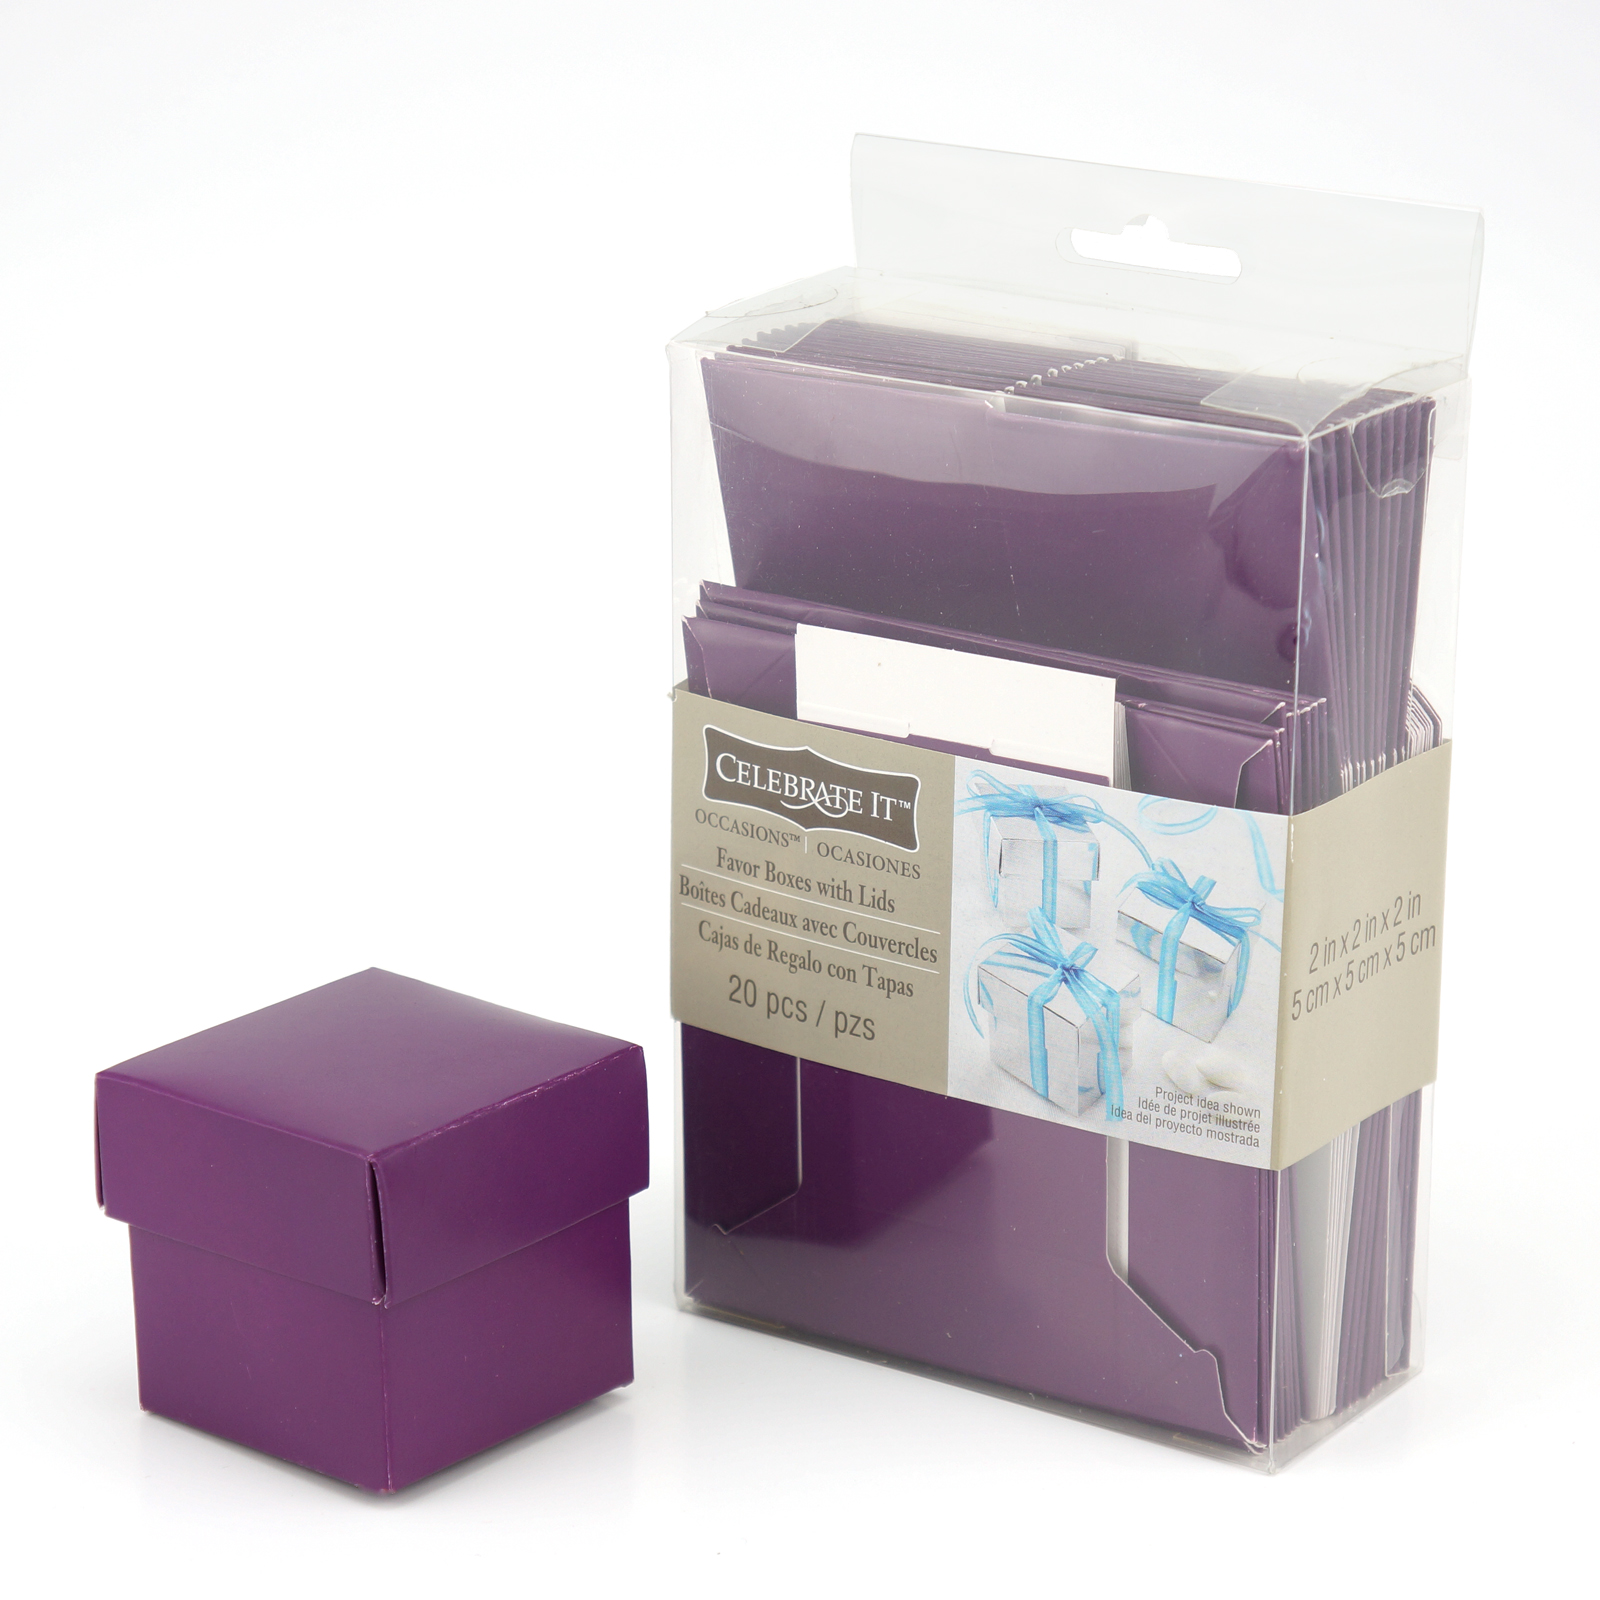 Michaels Brown Favor Boxes : Purple favor boxes with lids by celebrate it